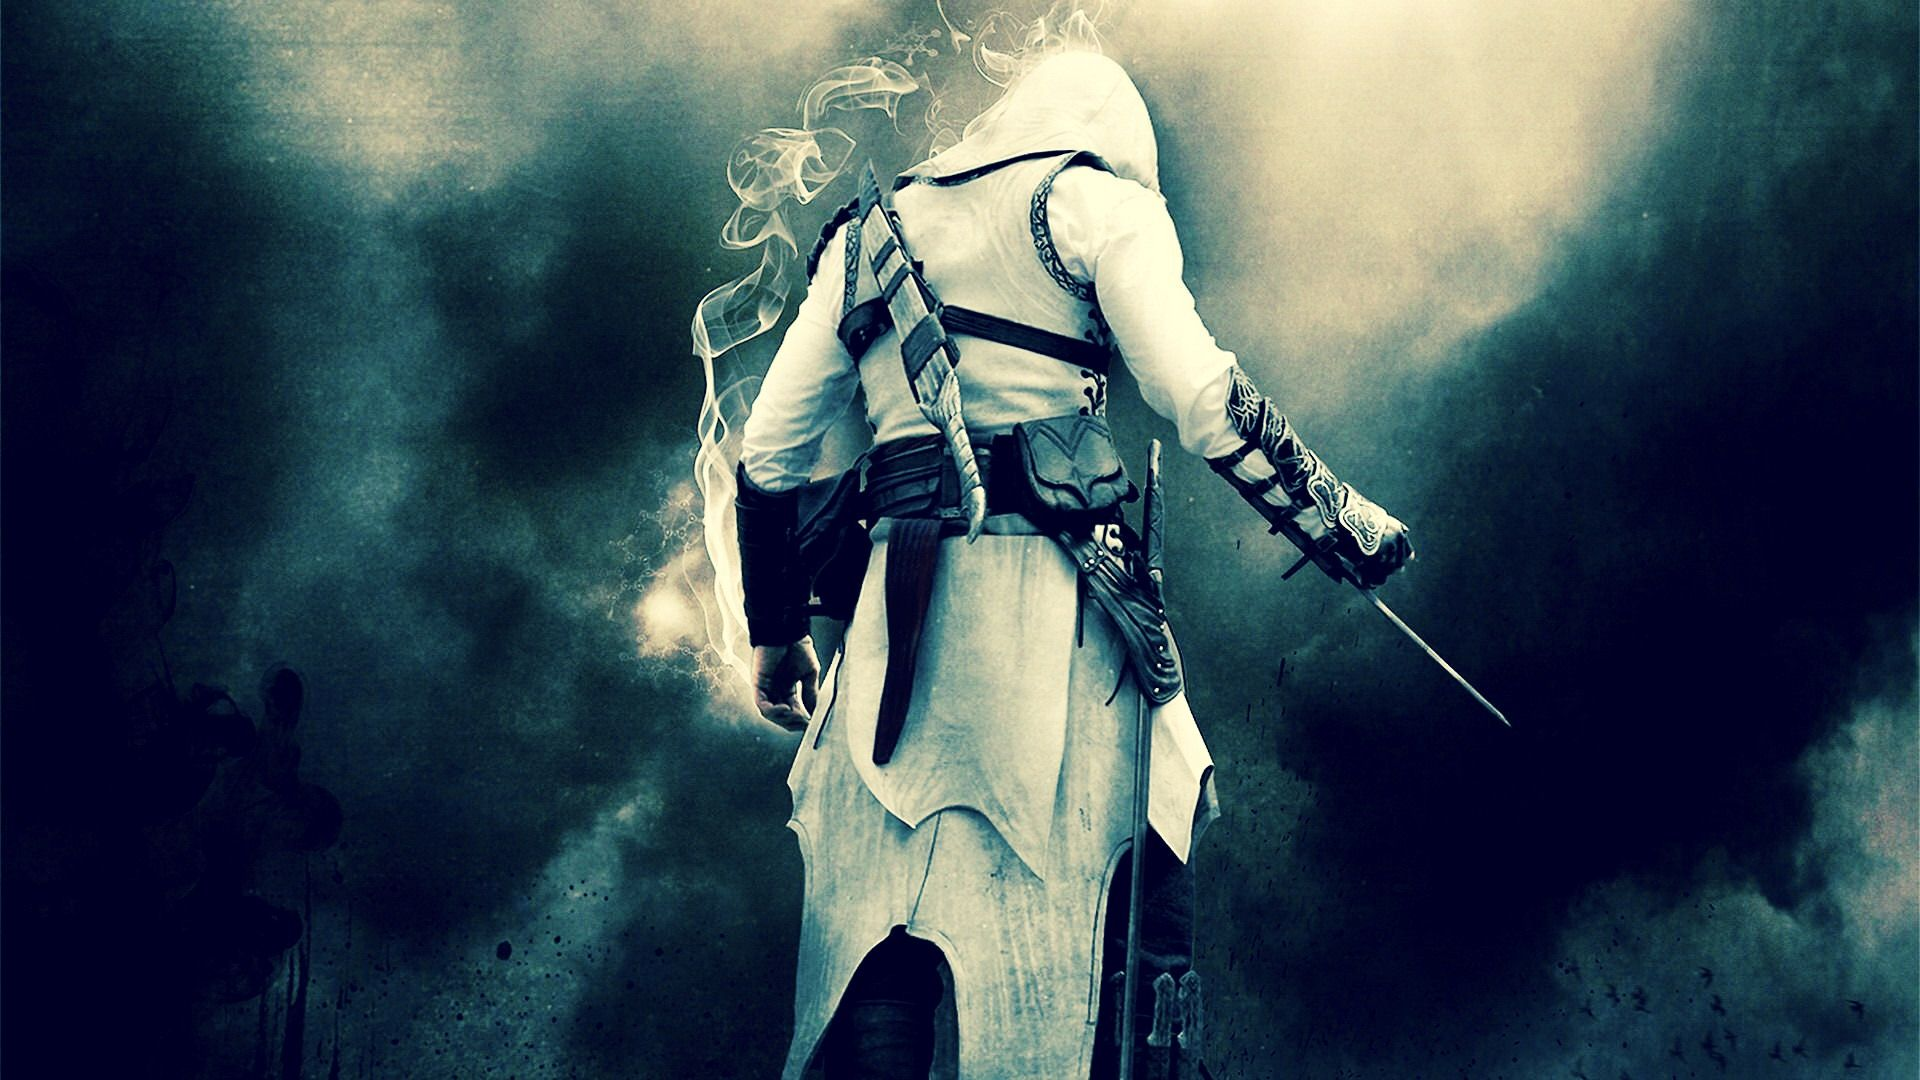 Altair Wallpaper Assassin S Creed Assassins Creed Assassin S